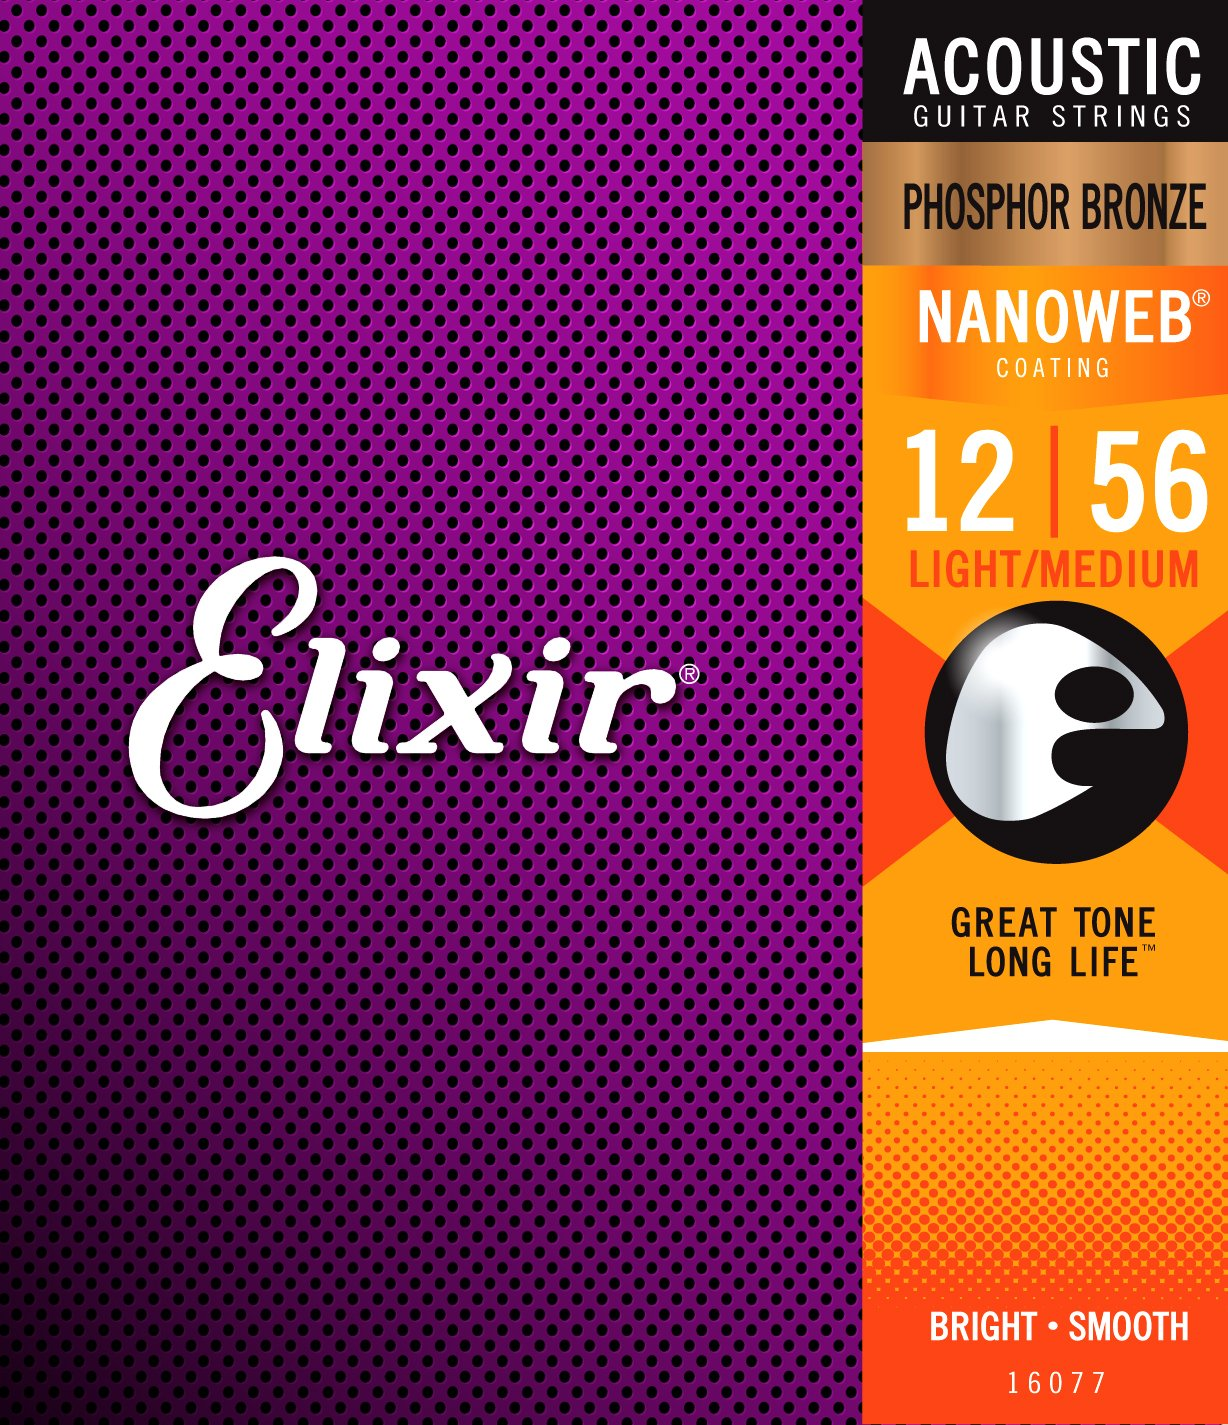 Elixir Acoustic Nano Phosphor Bronze Light/Medium 12-56 16077